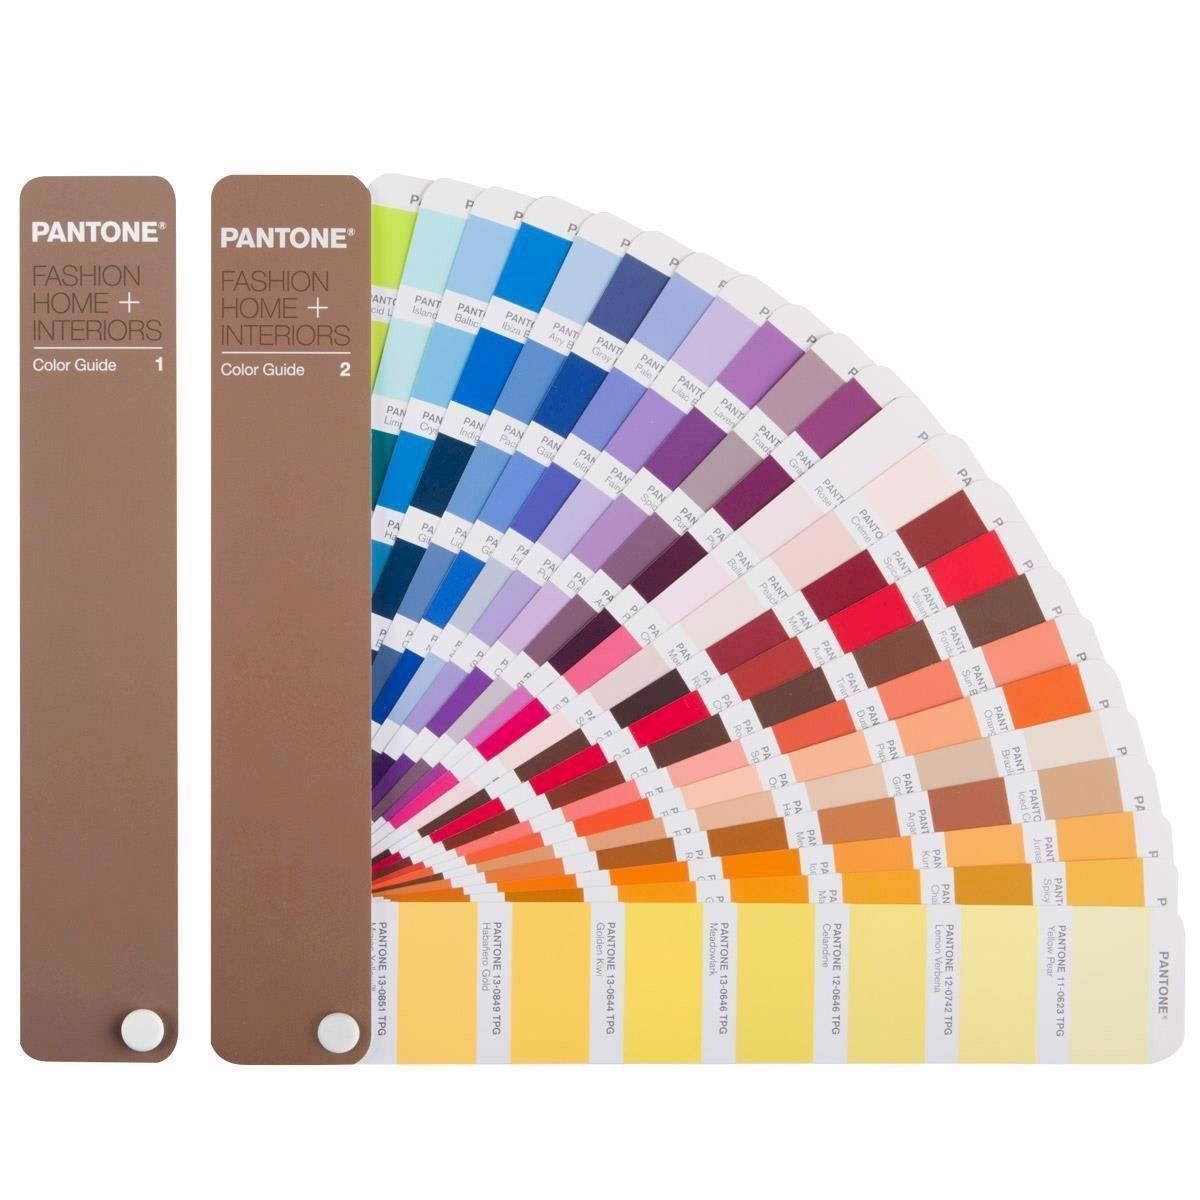 Pantone F&H Color Guide - FHIP110N